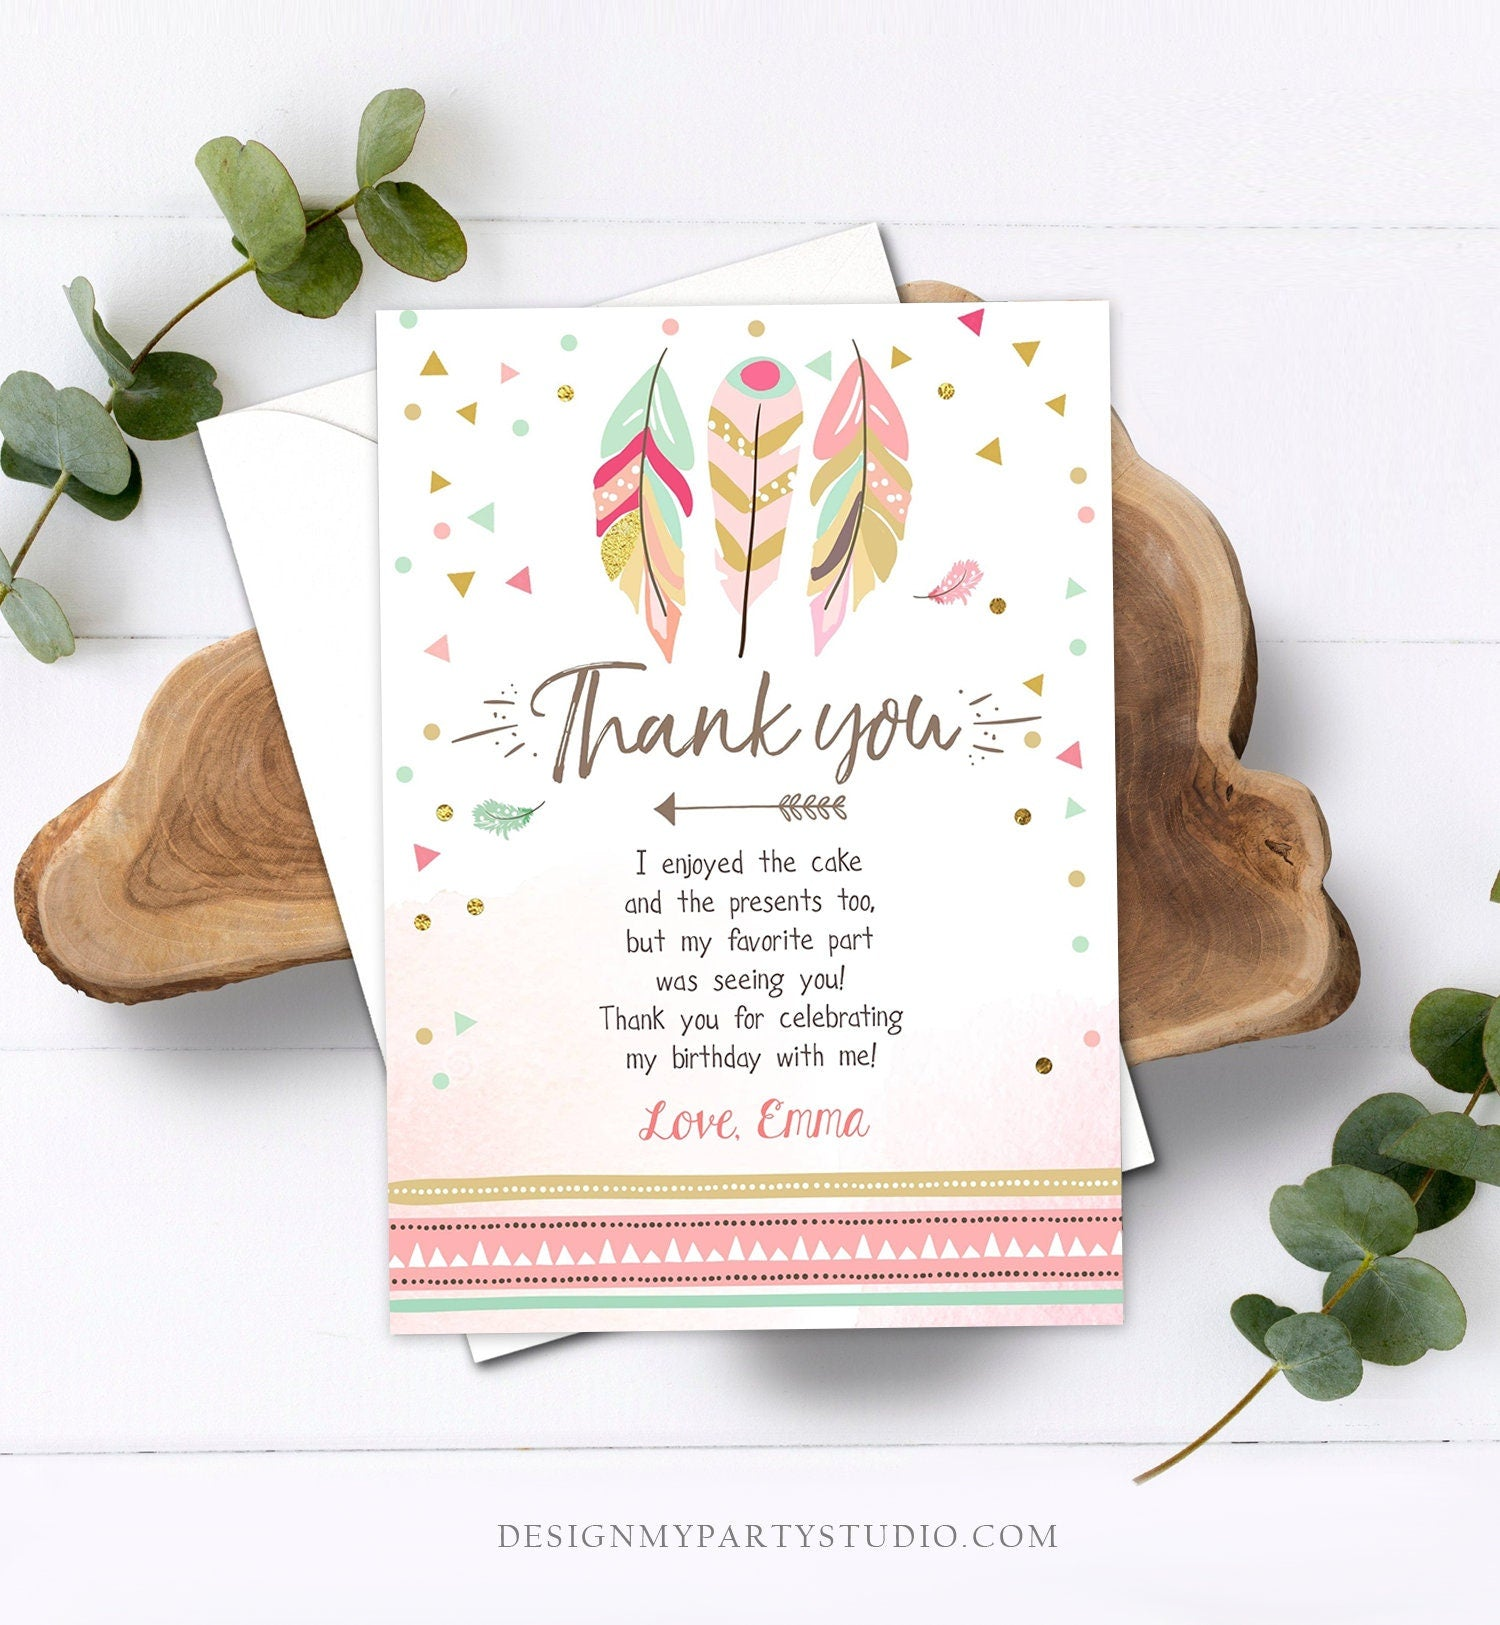 Editable Thank You Card Wild One Thank you Note Wild And Three Feathers Pink and Gold Girl Download Printable Template Corjl Digital 0073